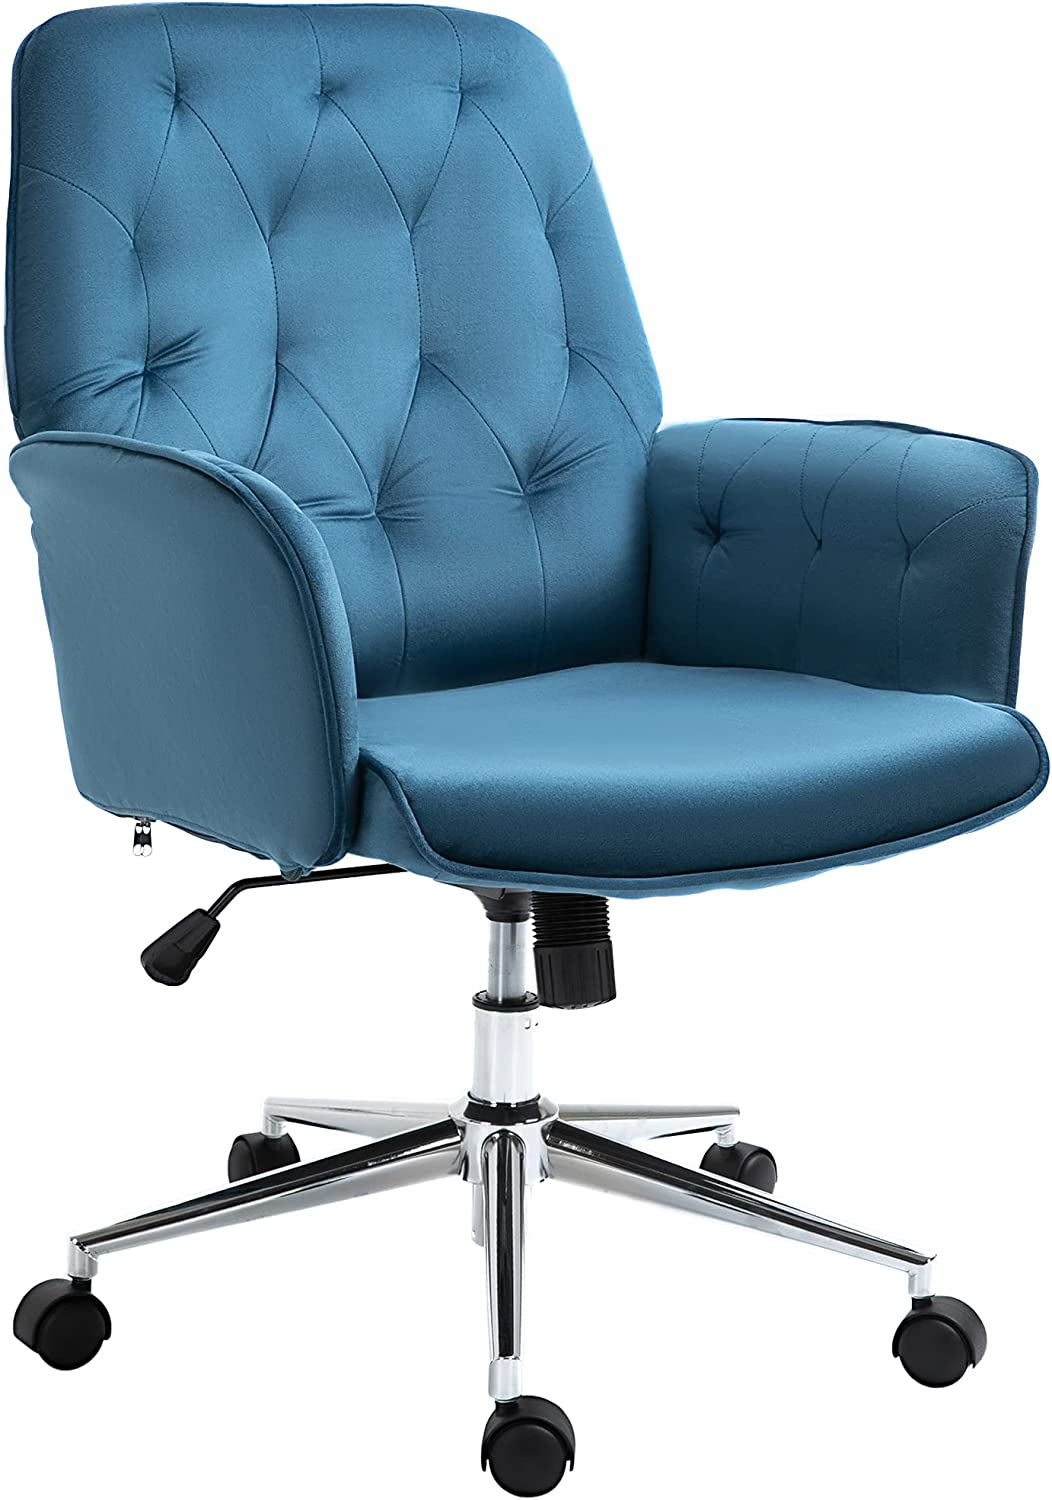 Vinsetto Modern Mid-Back Tufted Velvet Fabric Home Office Desk Chair with Arms, Swivel Adjustable Task Chair, Upholstery Accent Chair with Soft Seat, Metal Base - Blue